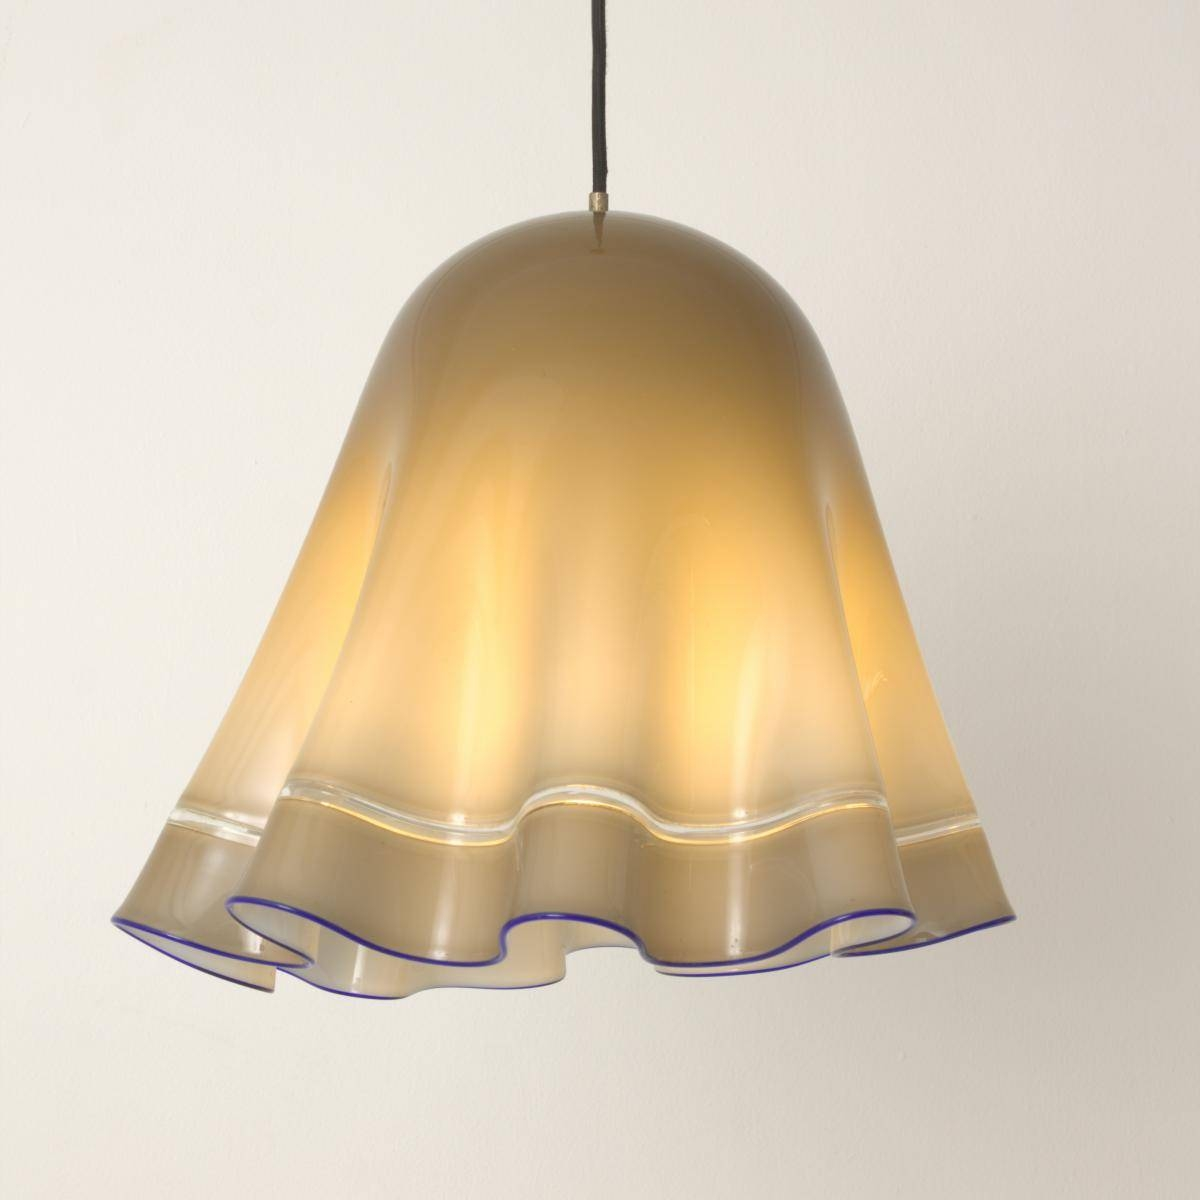 Vintage Grey & Blue Murano Glass Pendant Lamp For Sale At Pamono for Murano Pendant Lights (Image 14 of 15)